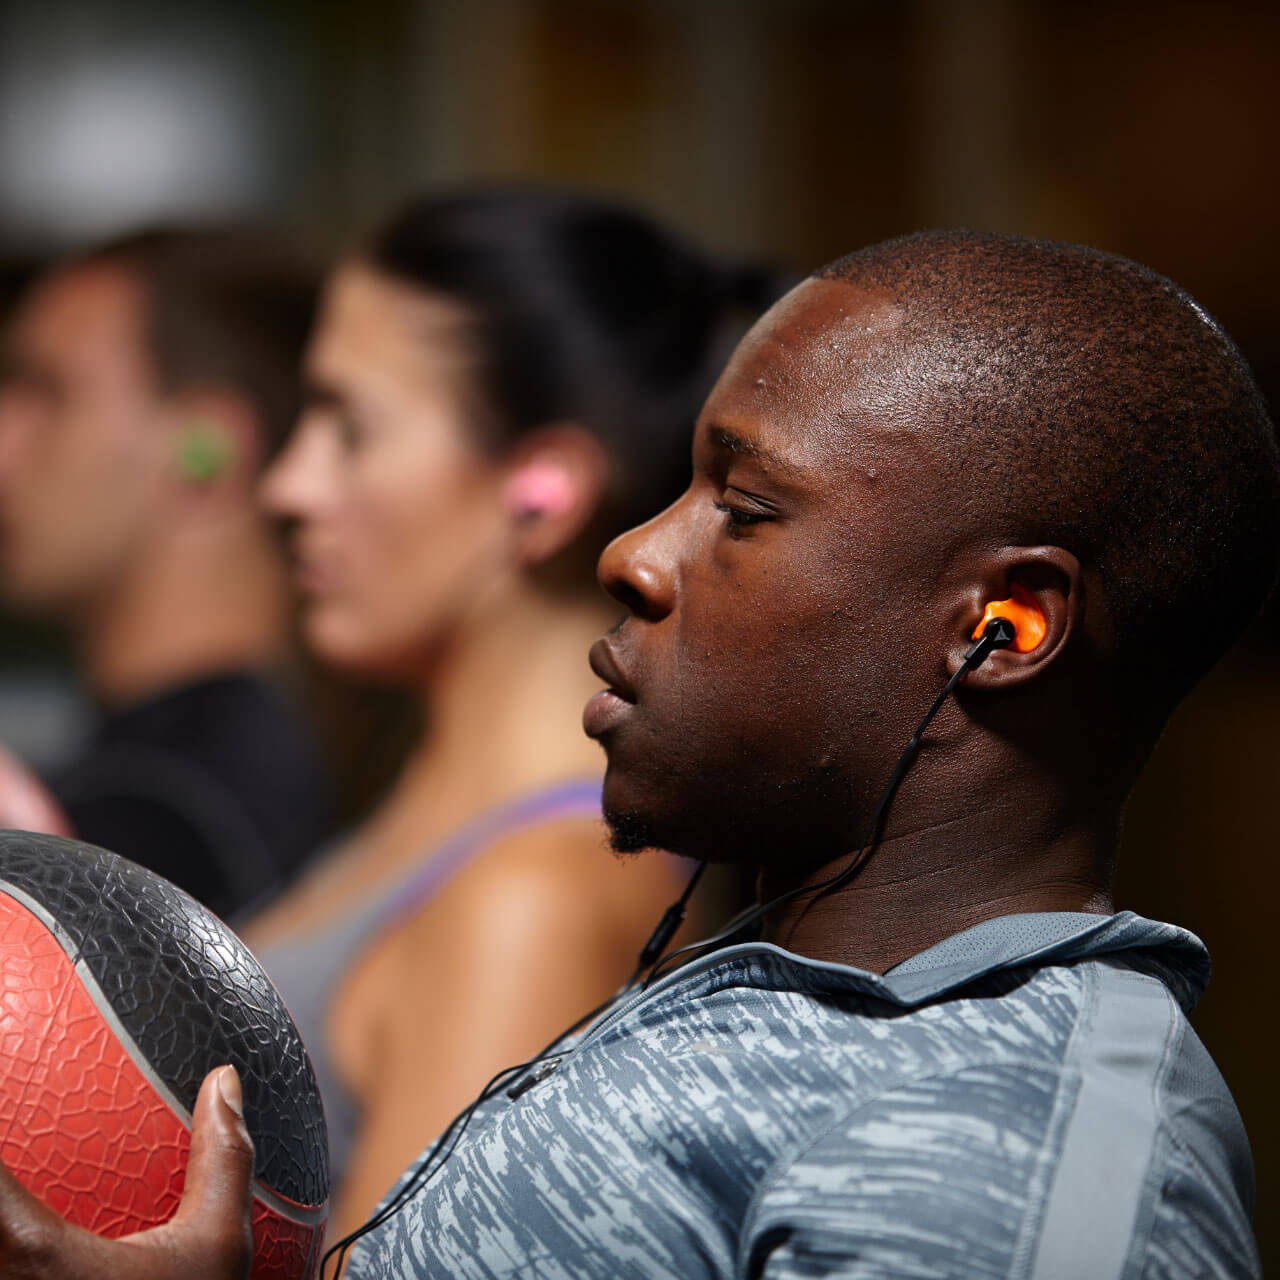 man working out with orange decibullz headphones